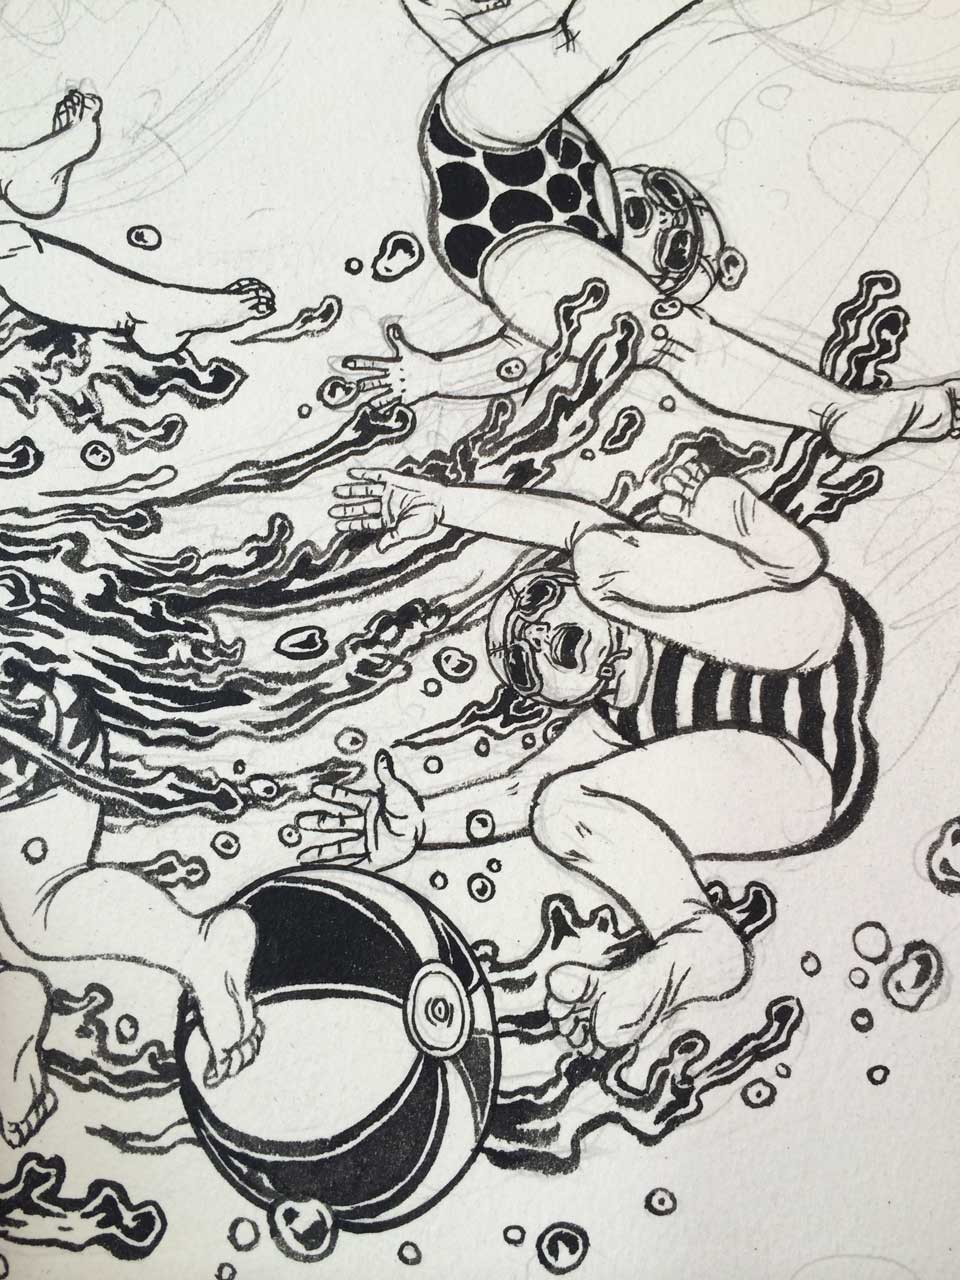 Yuko Shimizu - PLANSPONSOR –kiddy pool emergency– -